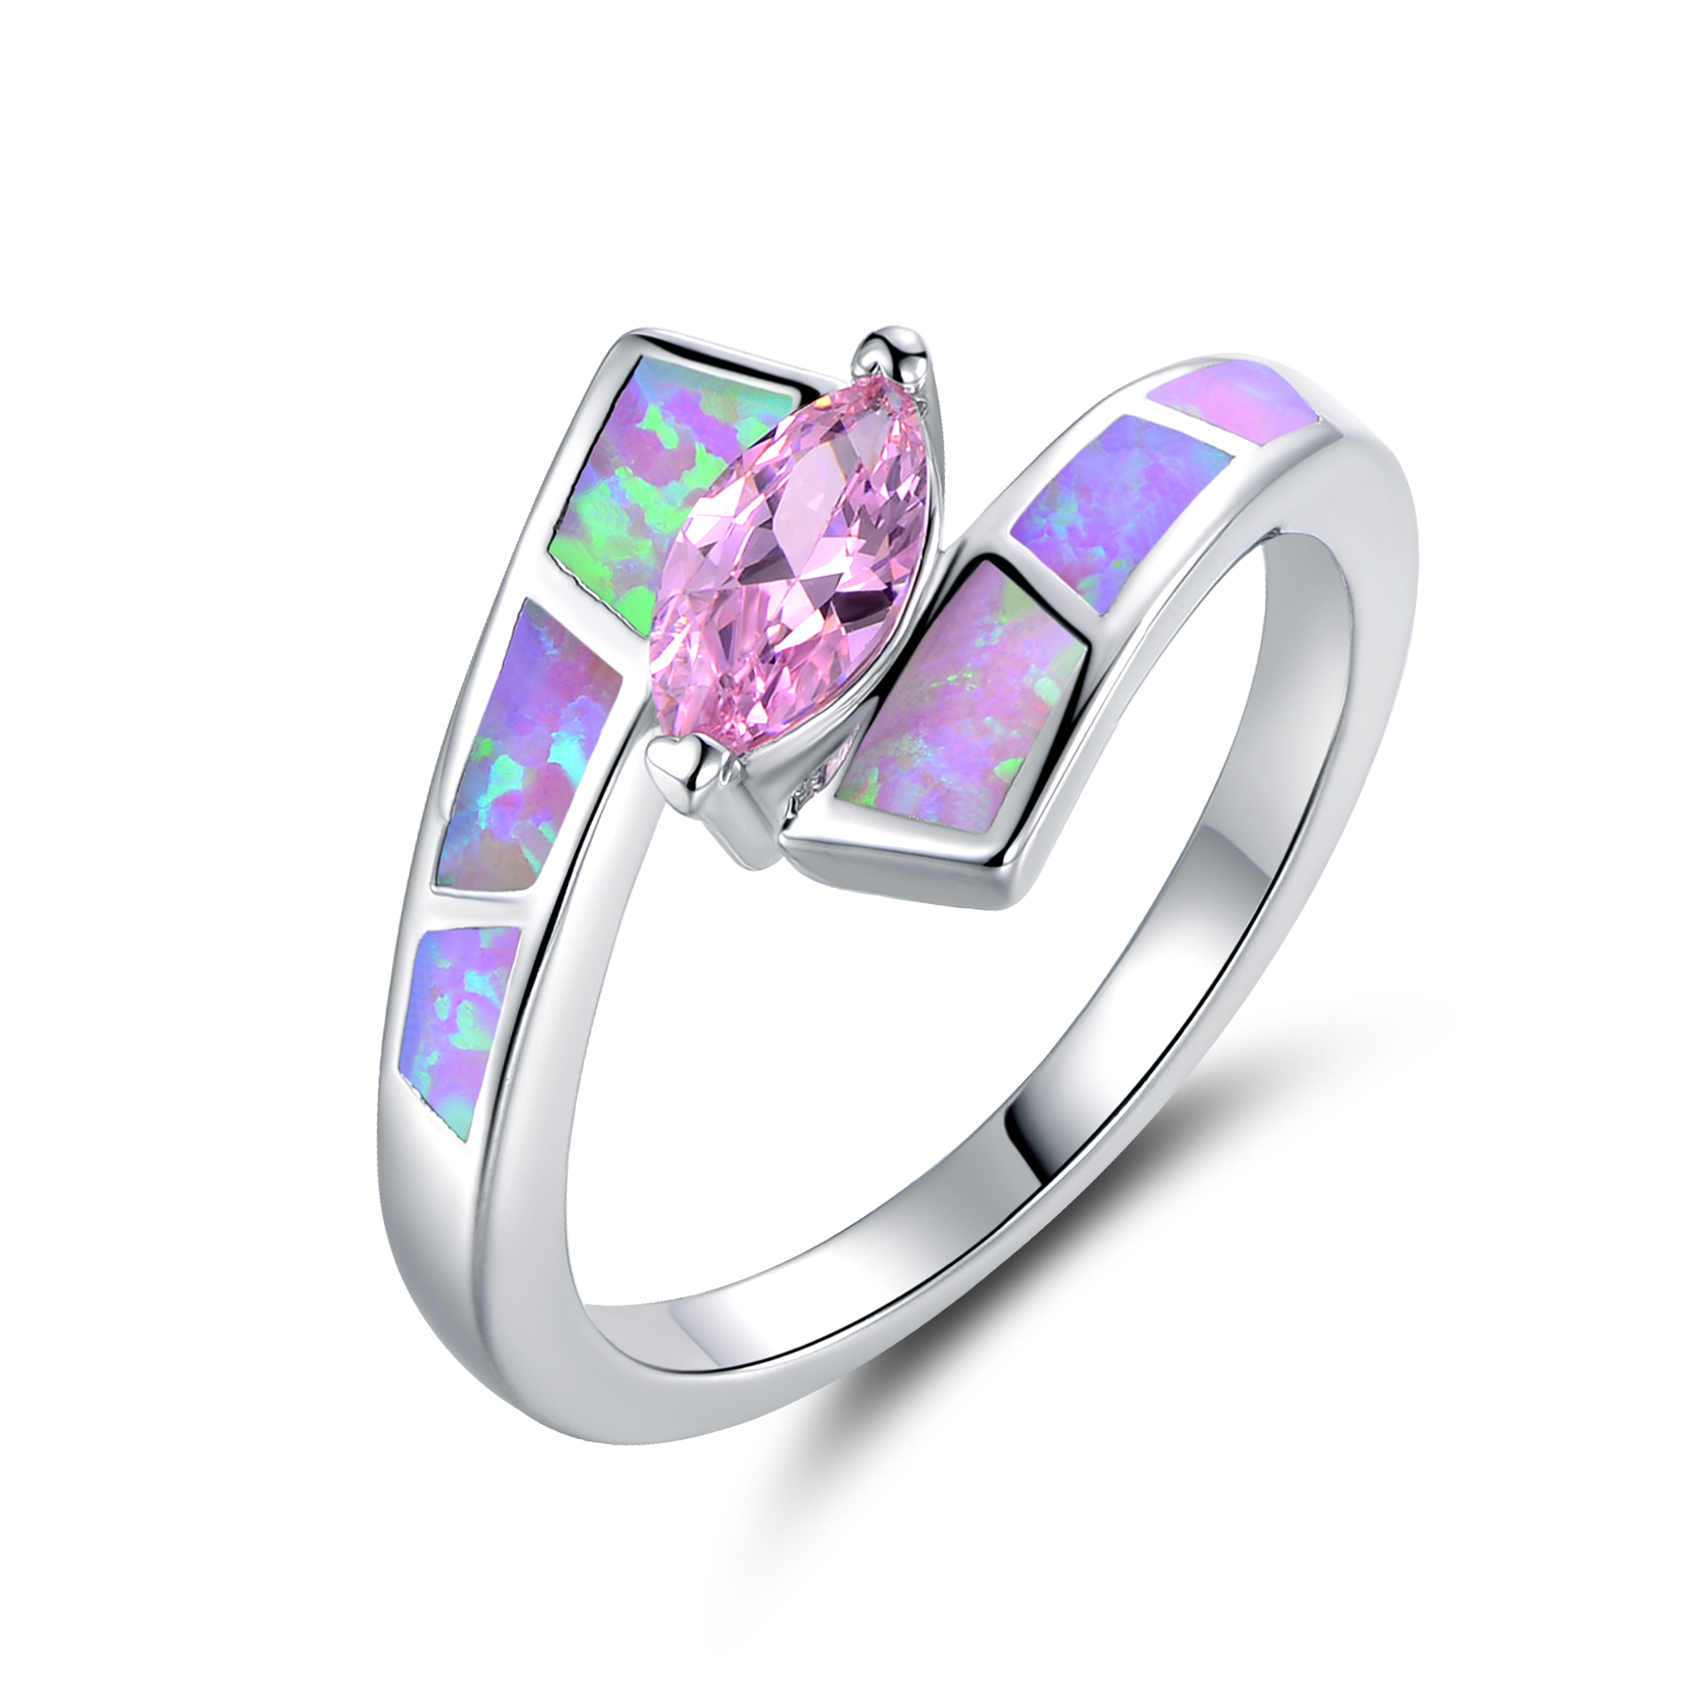 Rose Pink Crystal 18K White Gold Plated Infinity Ring Clear Cubic Zirconia UK